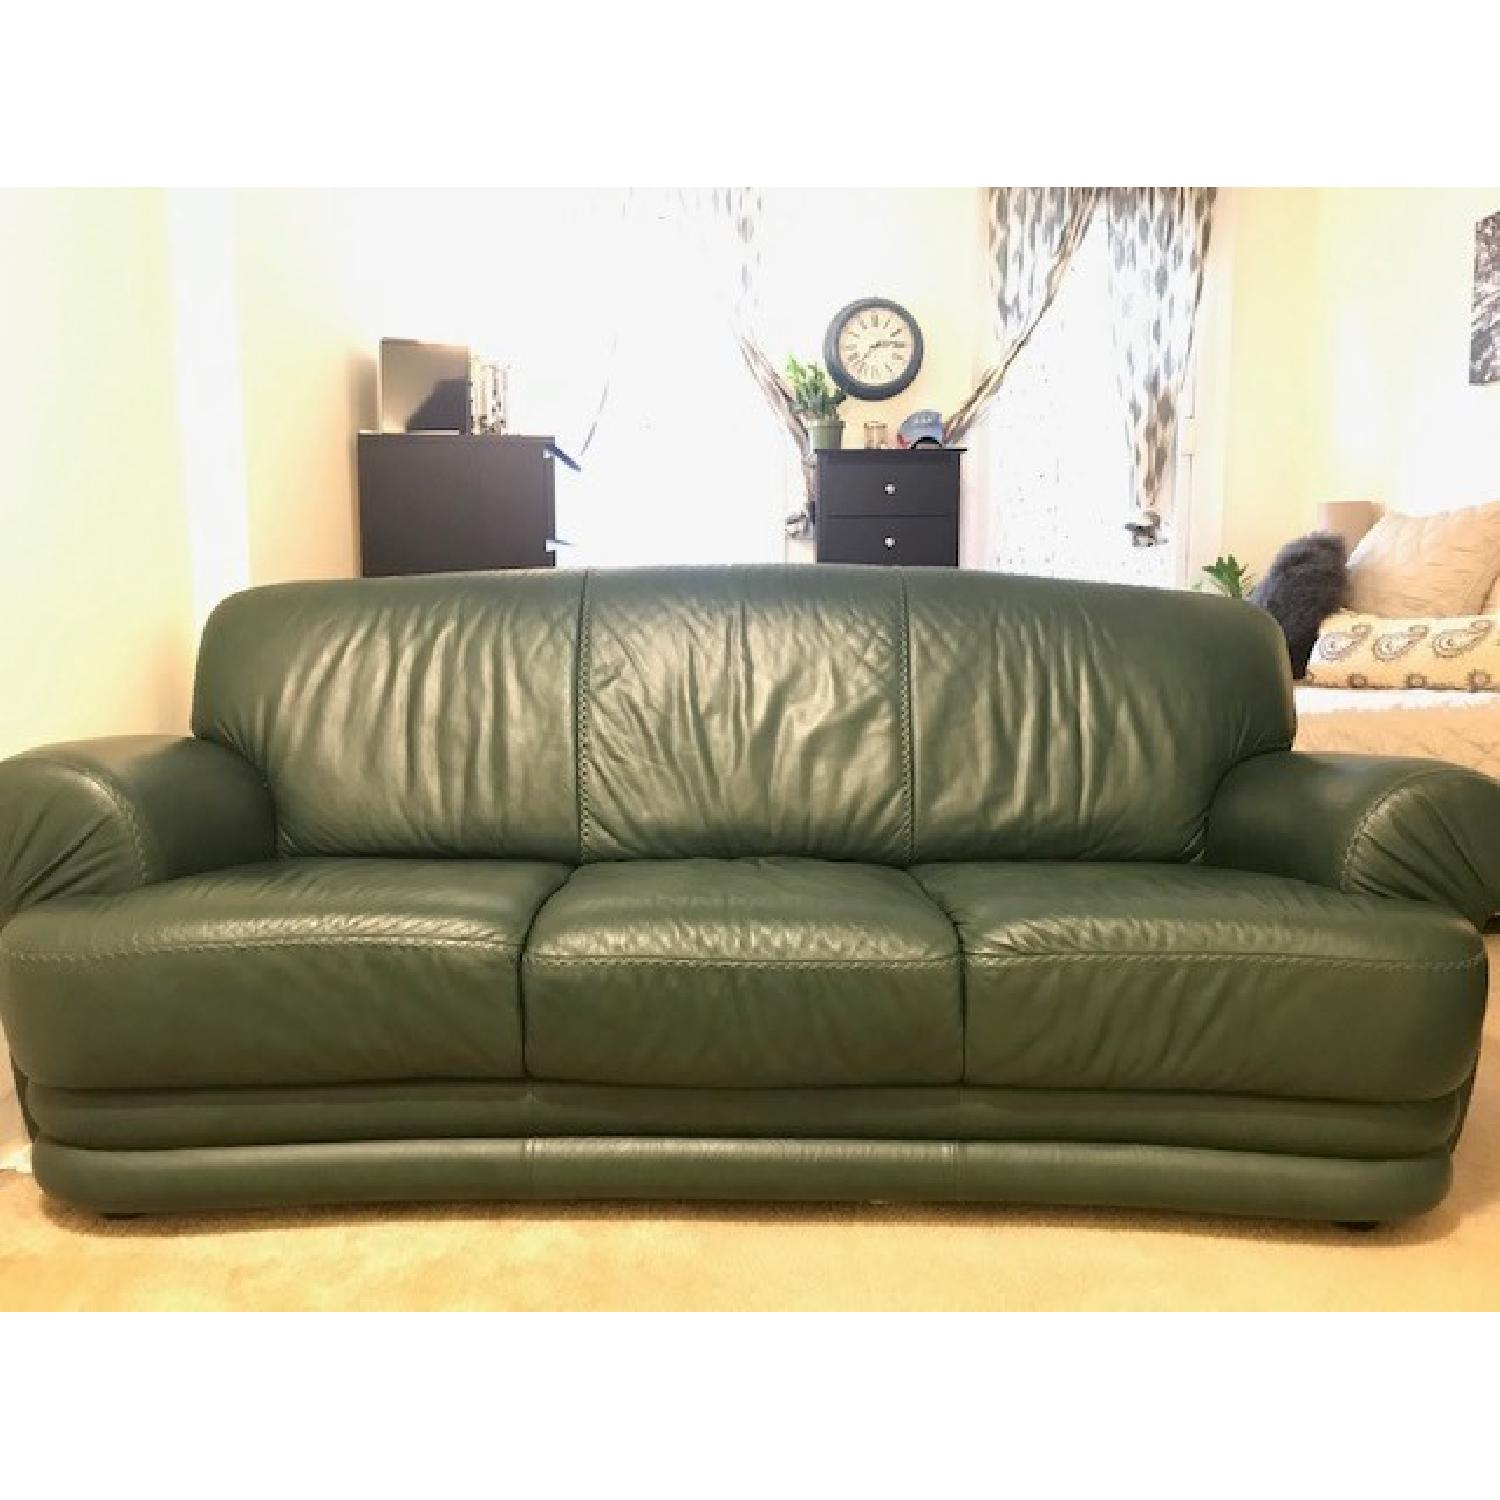 Green Leather 3 Seater Sofa - image-1